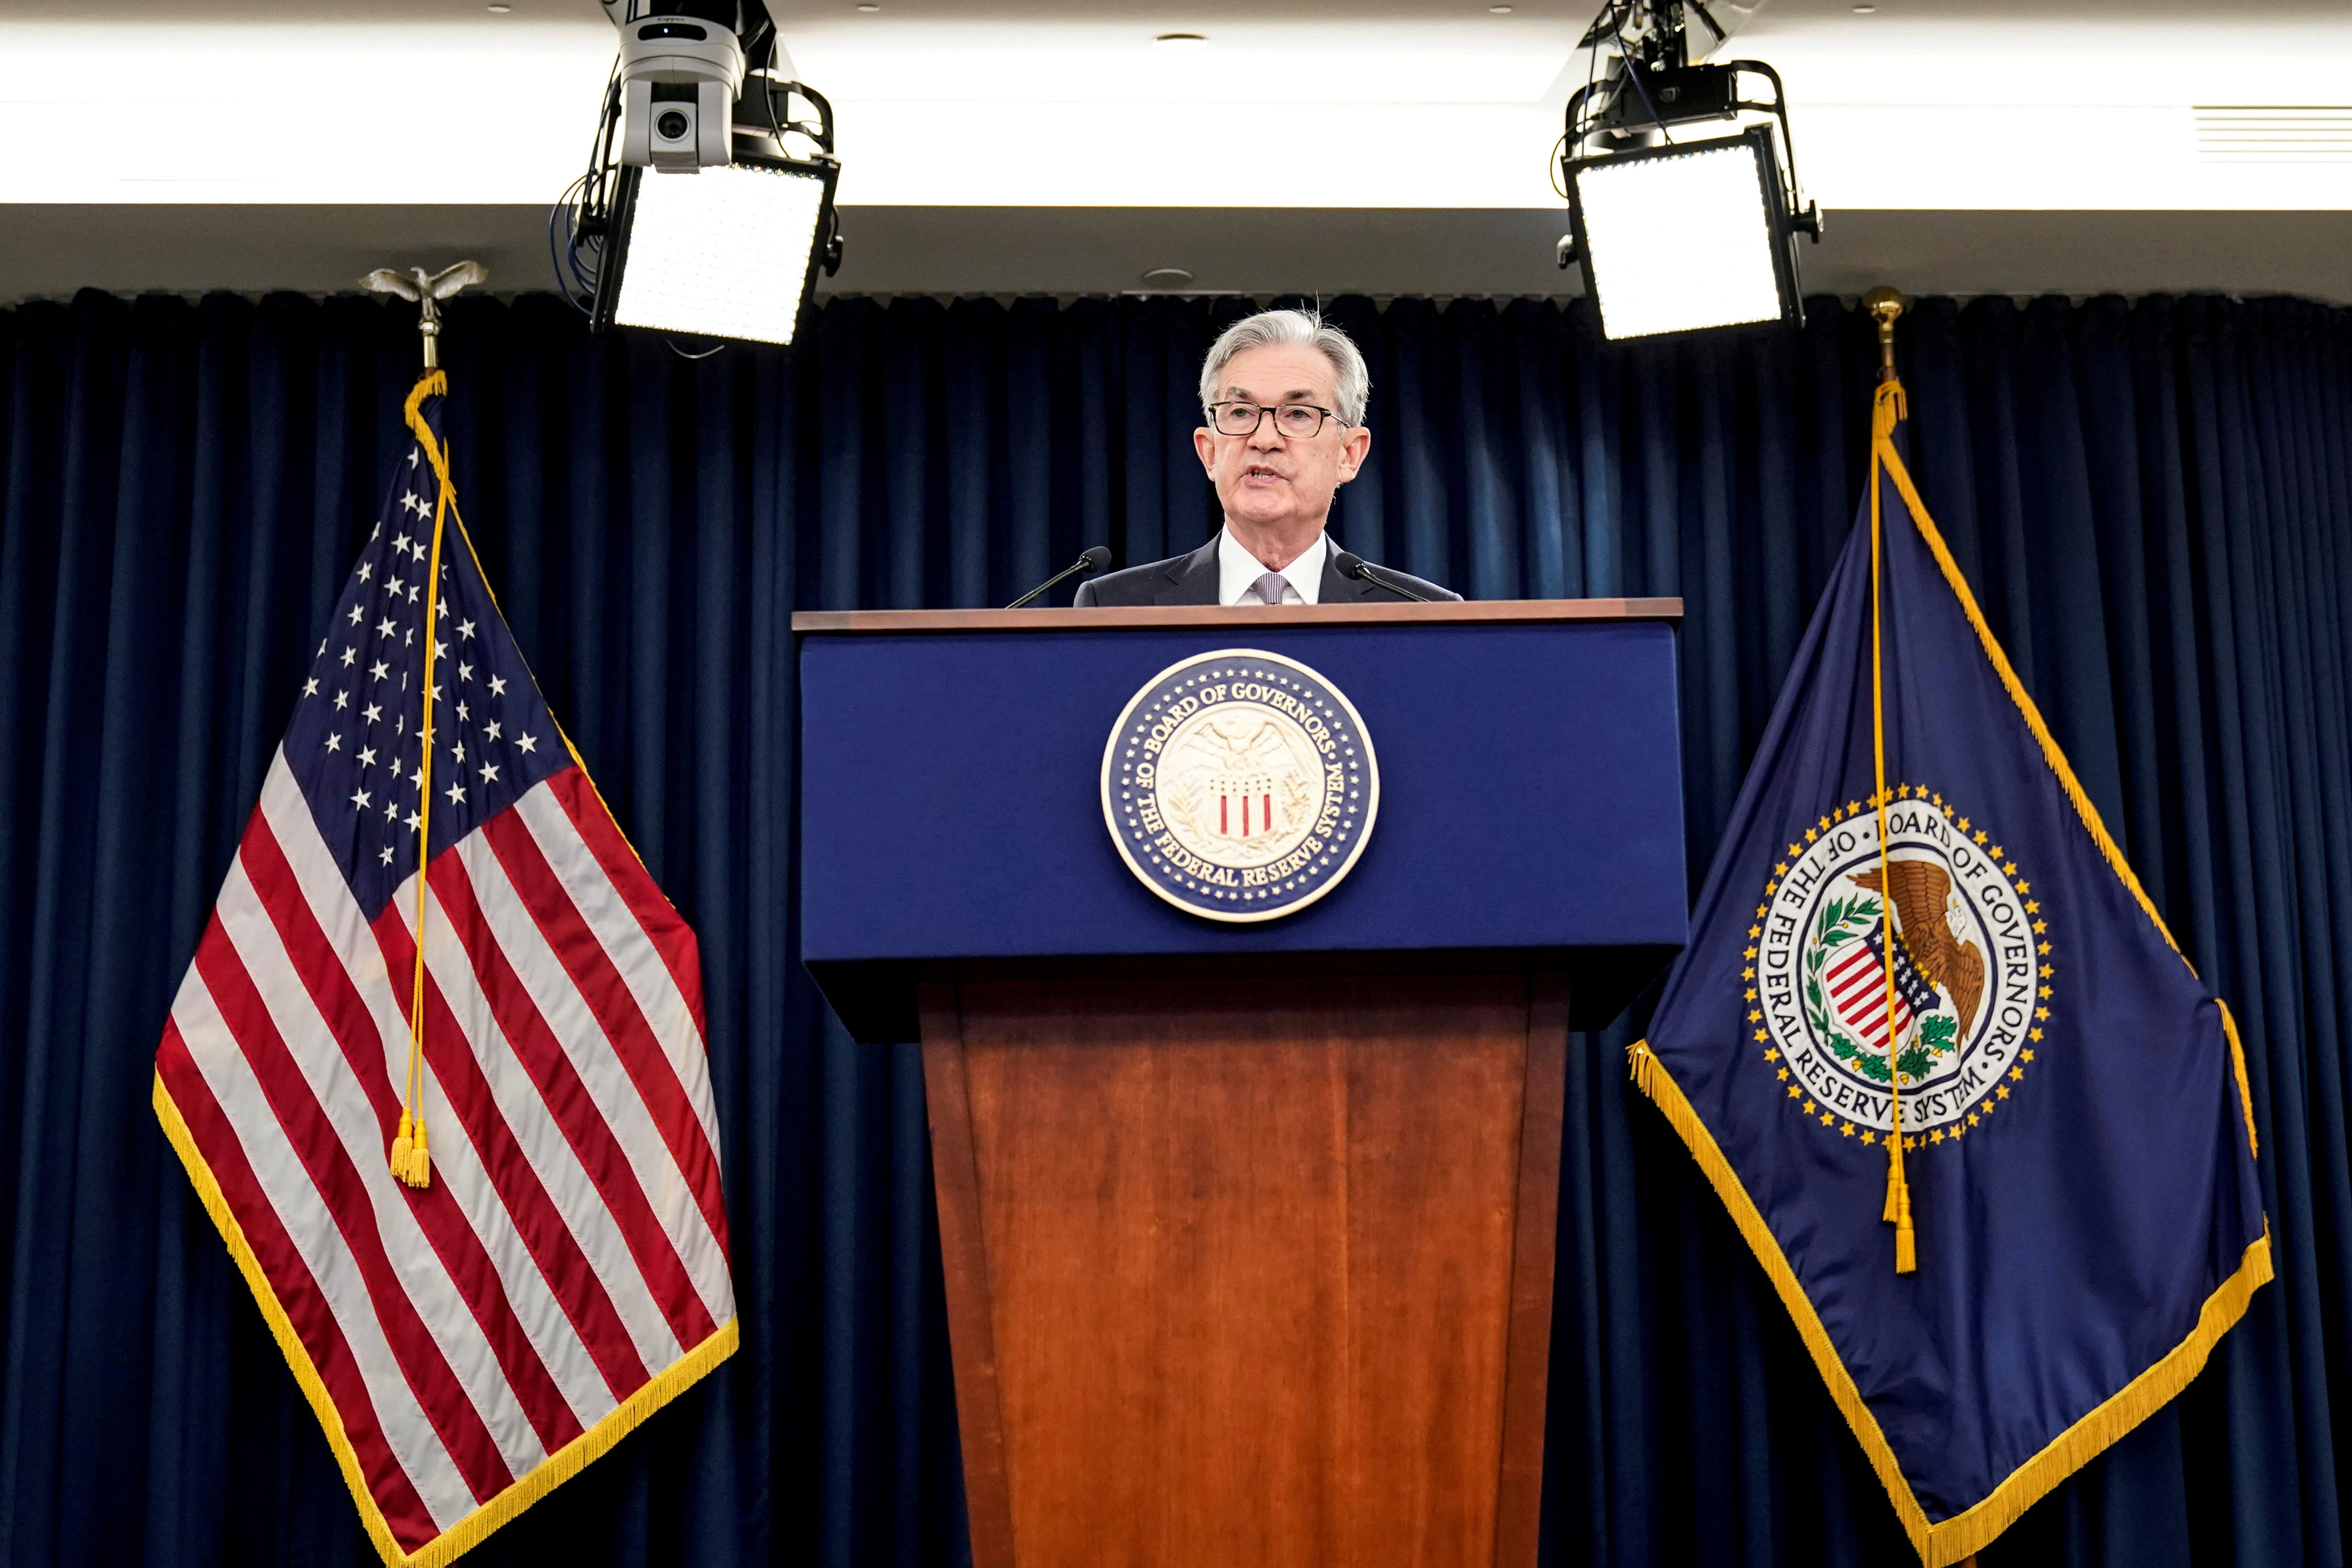 Federal Reserve Chair Jerome Powell holds a news conference following the Federal Open Market Committee meeting in Washington, U.S., December 11, 2019. REUTERS/Joshua Roberts